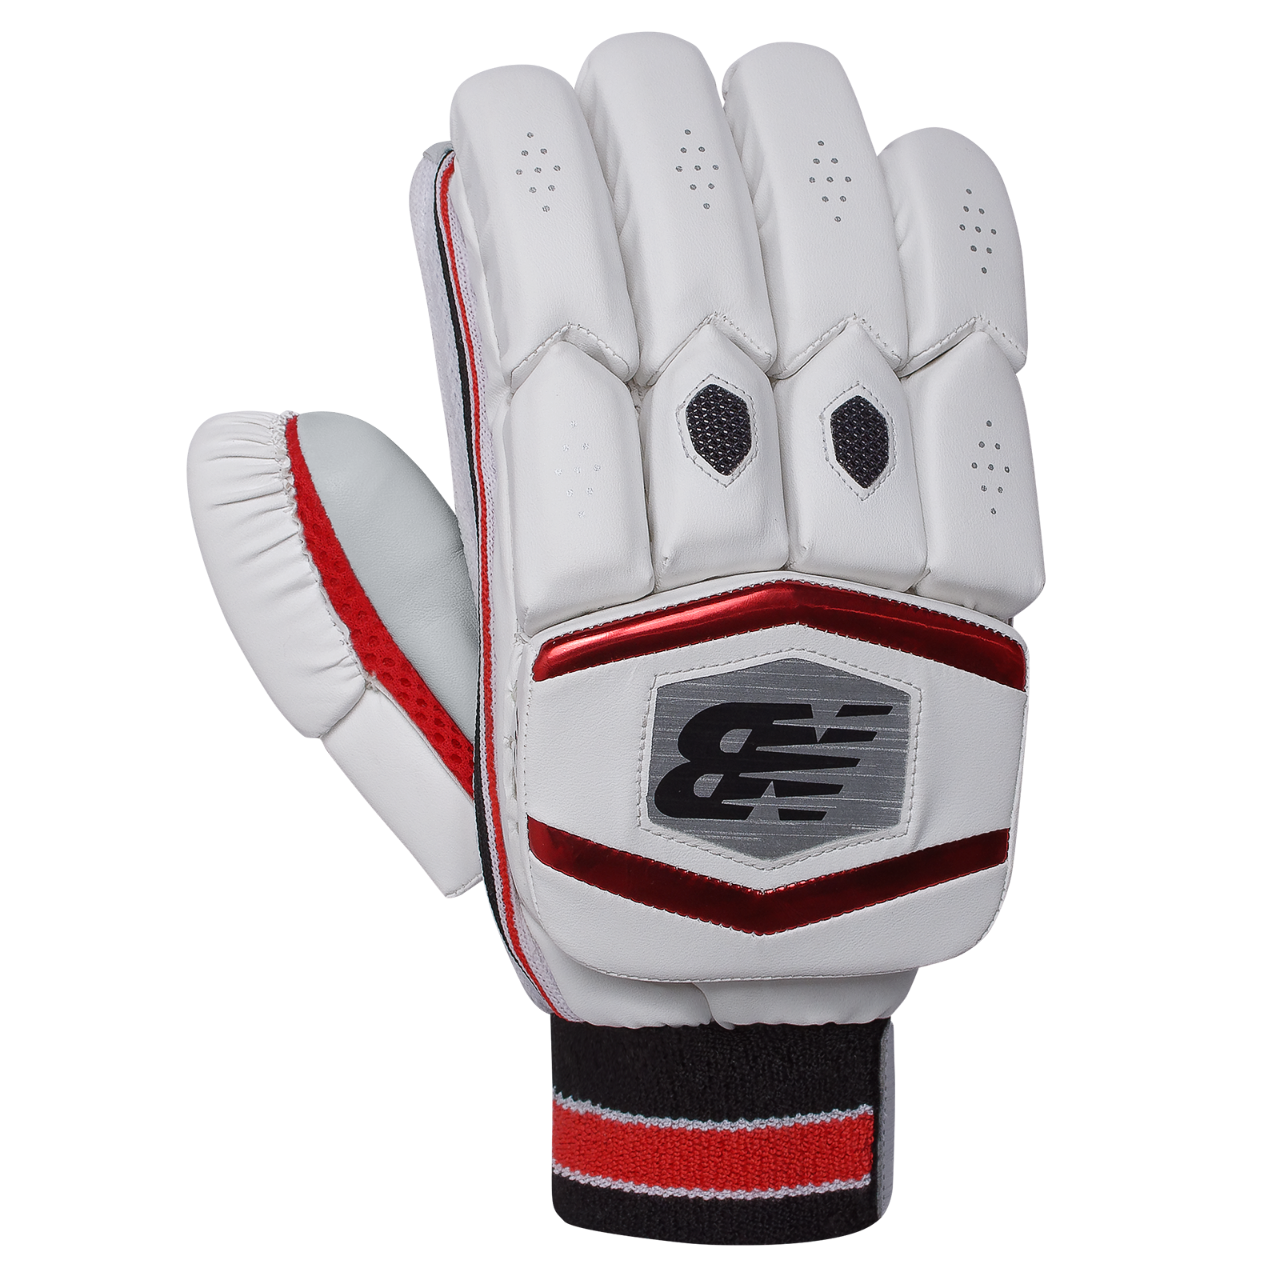 2021 New Balance TC 560 Batting Gloves